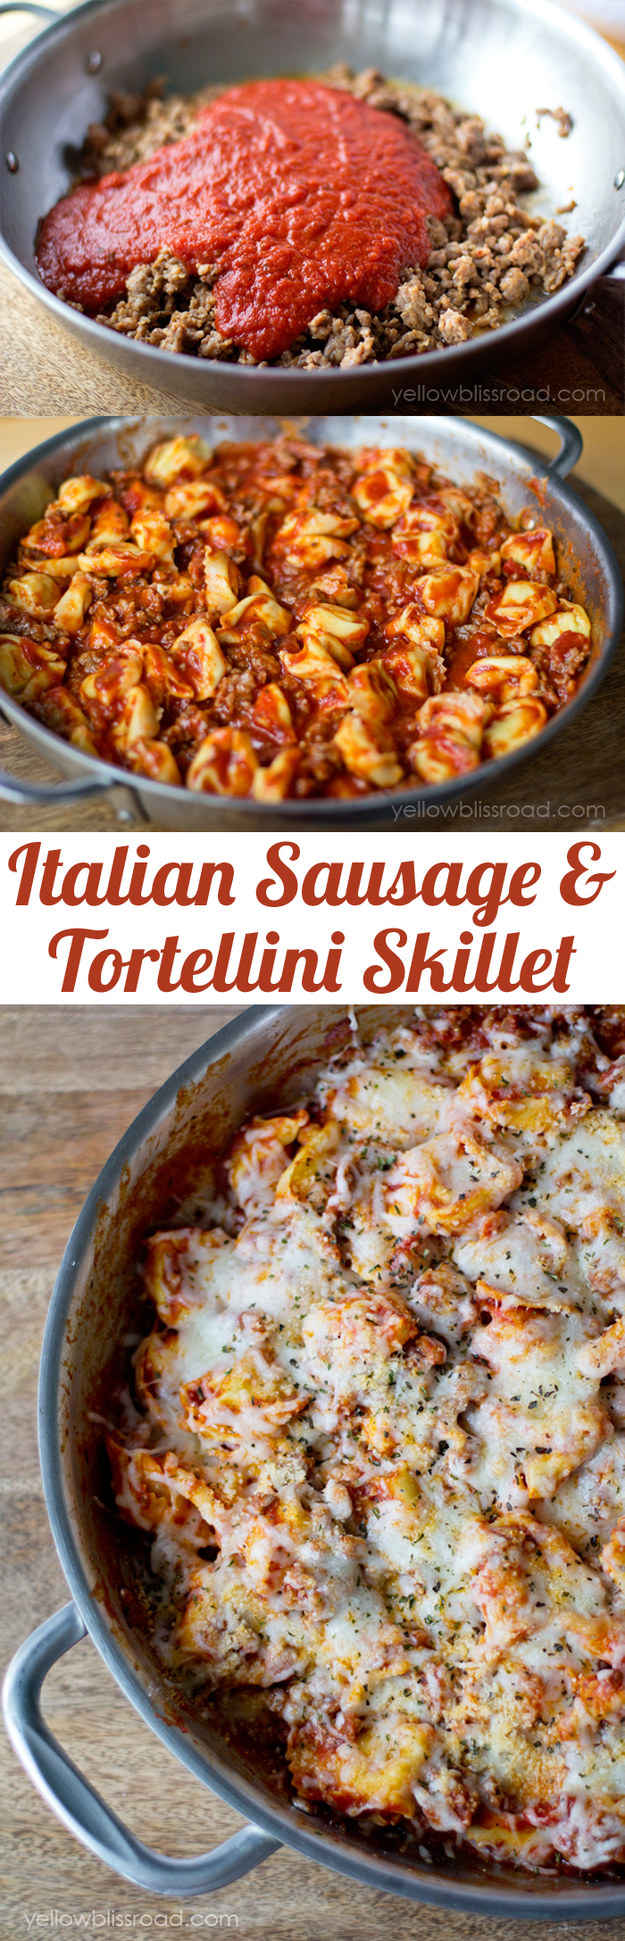 This one-pan Italian sausage and tortellini skillet that pairs perfectly with reruns of Friends.